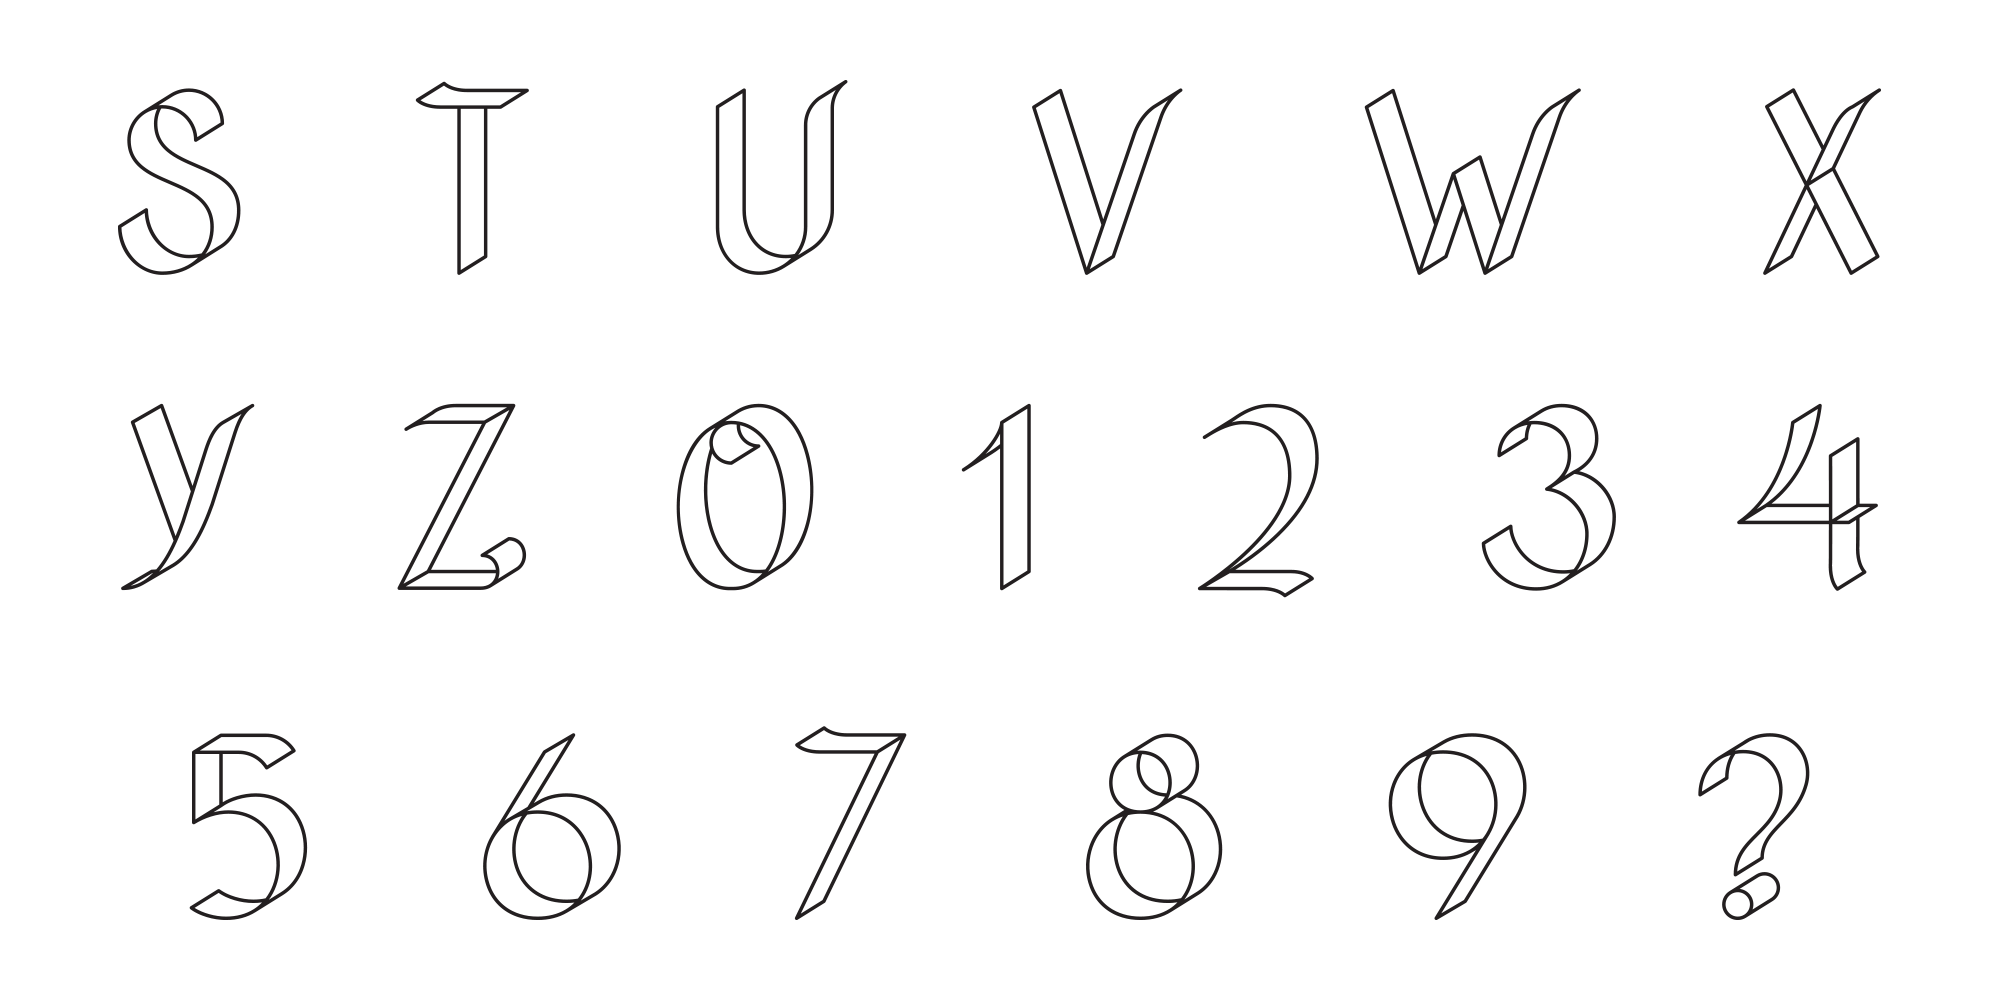 ADC_typeface2.png